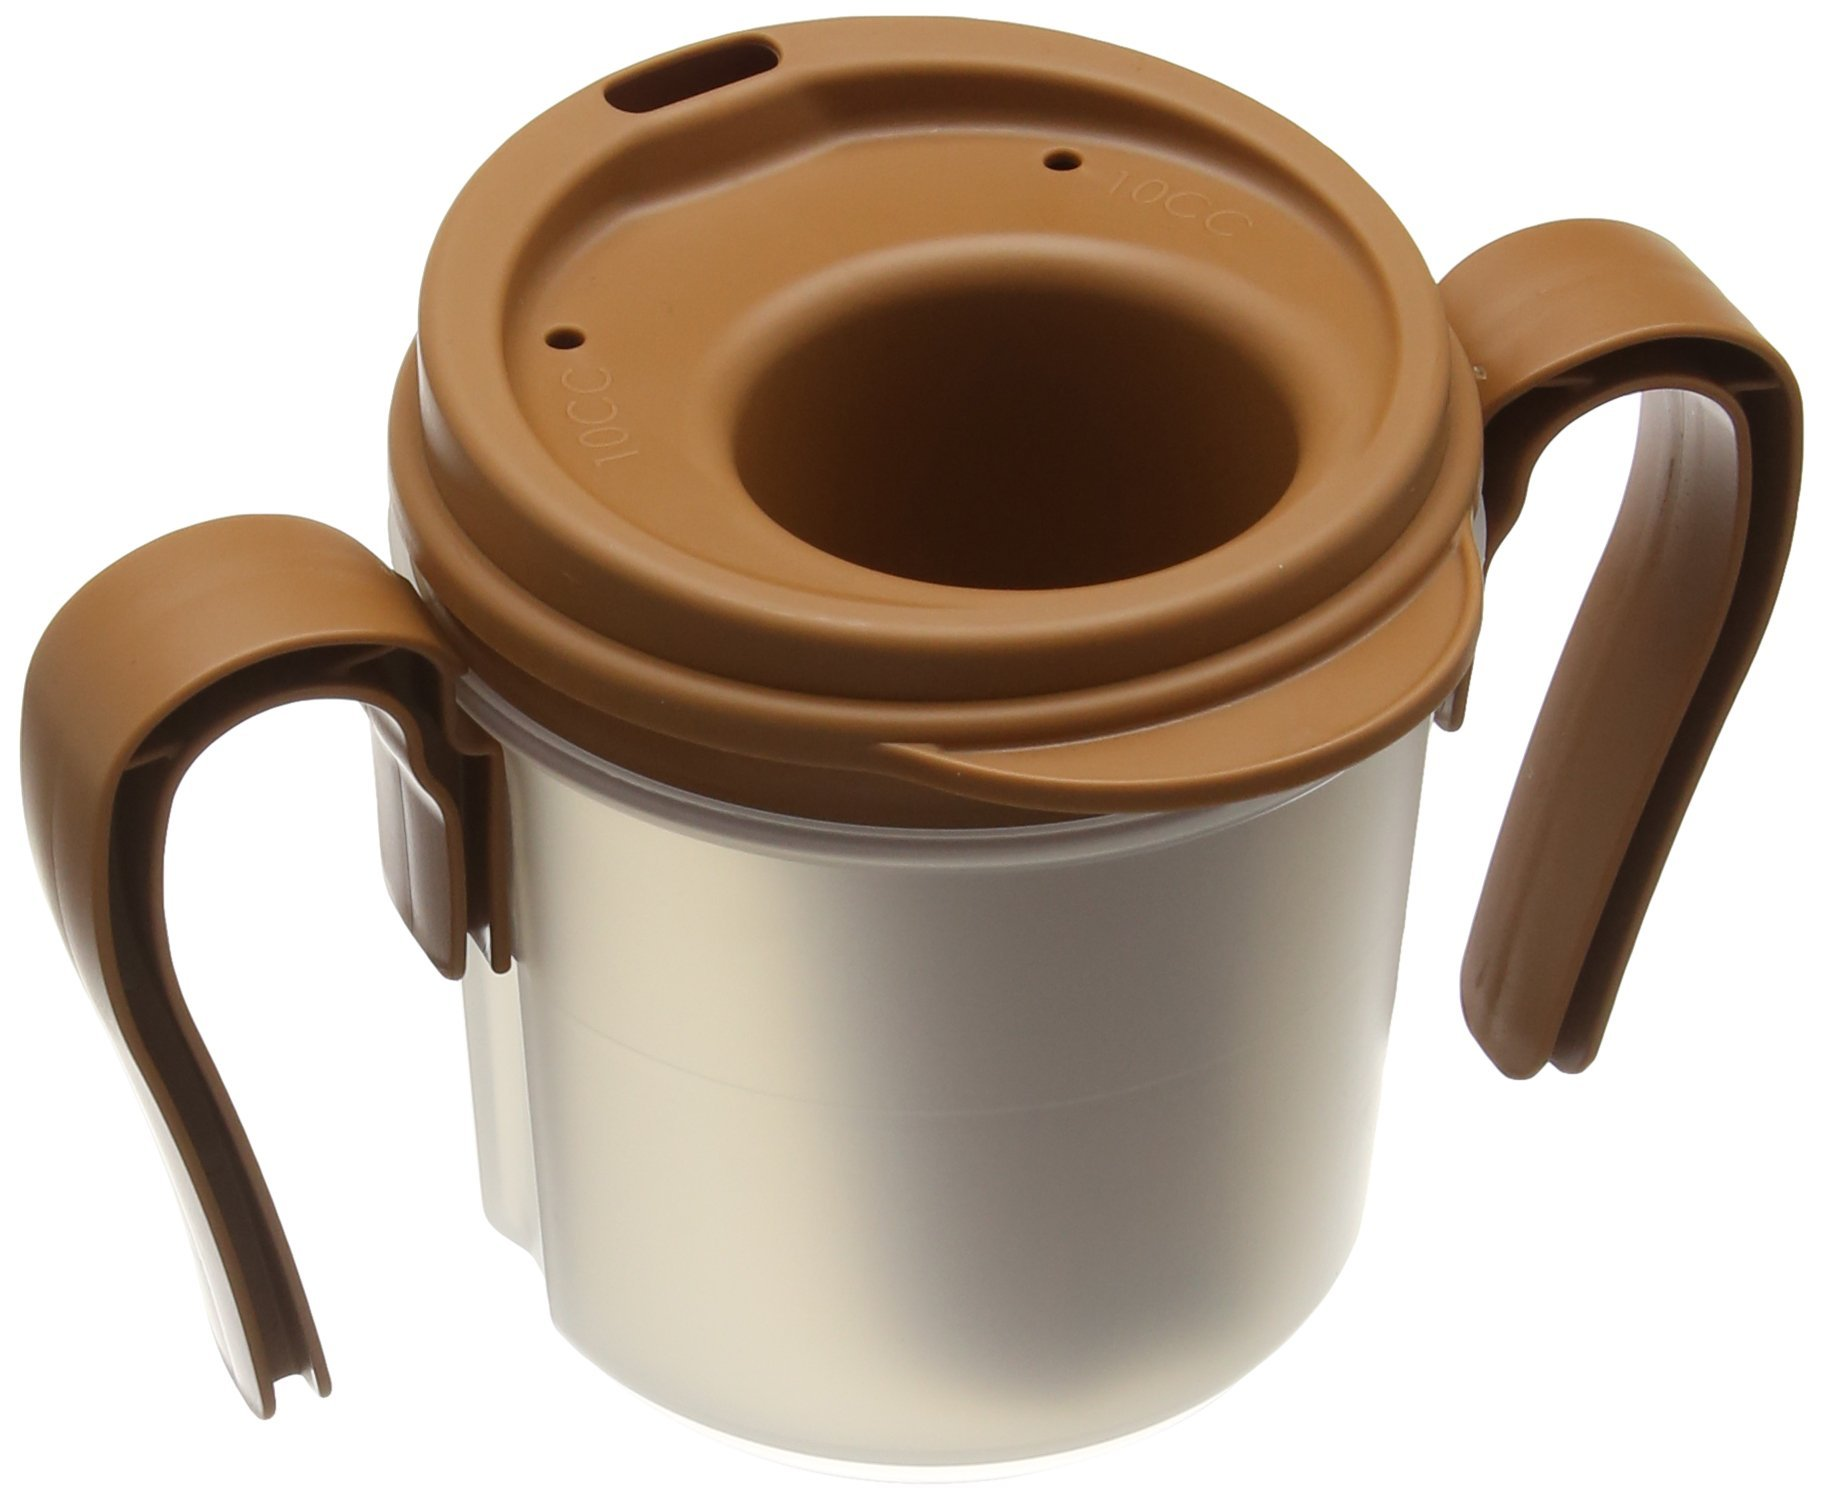 Provale Regulating Cup - Brown, 10 ml (Eligible for VAT Relief in The UK) by Provale